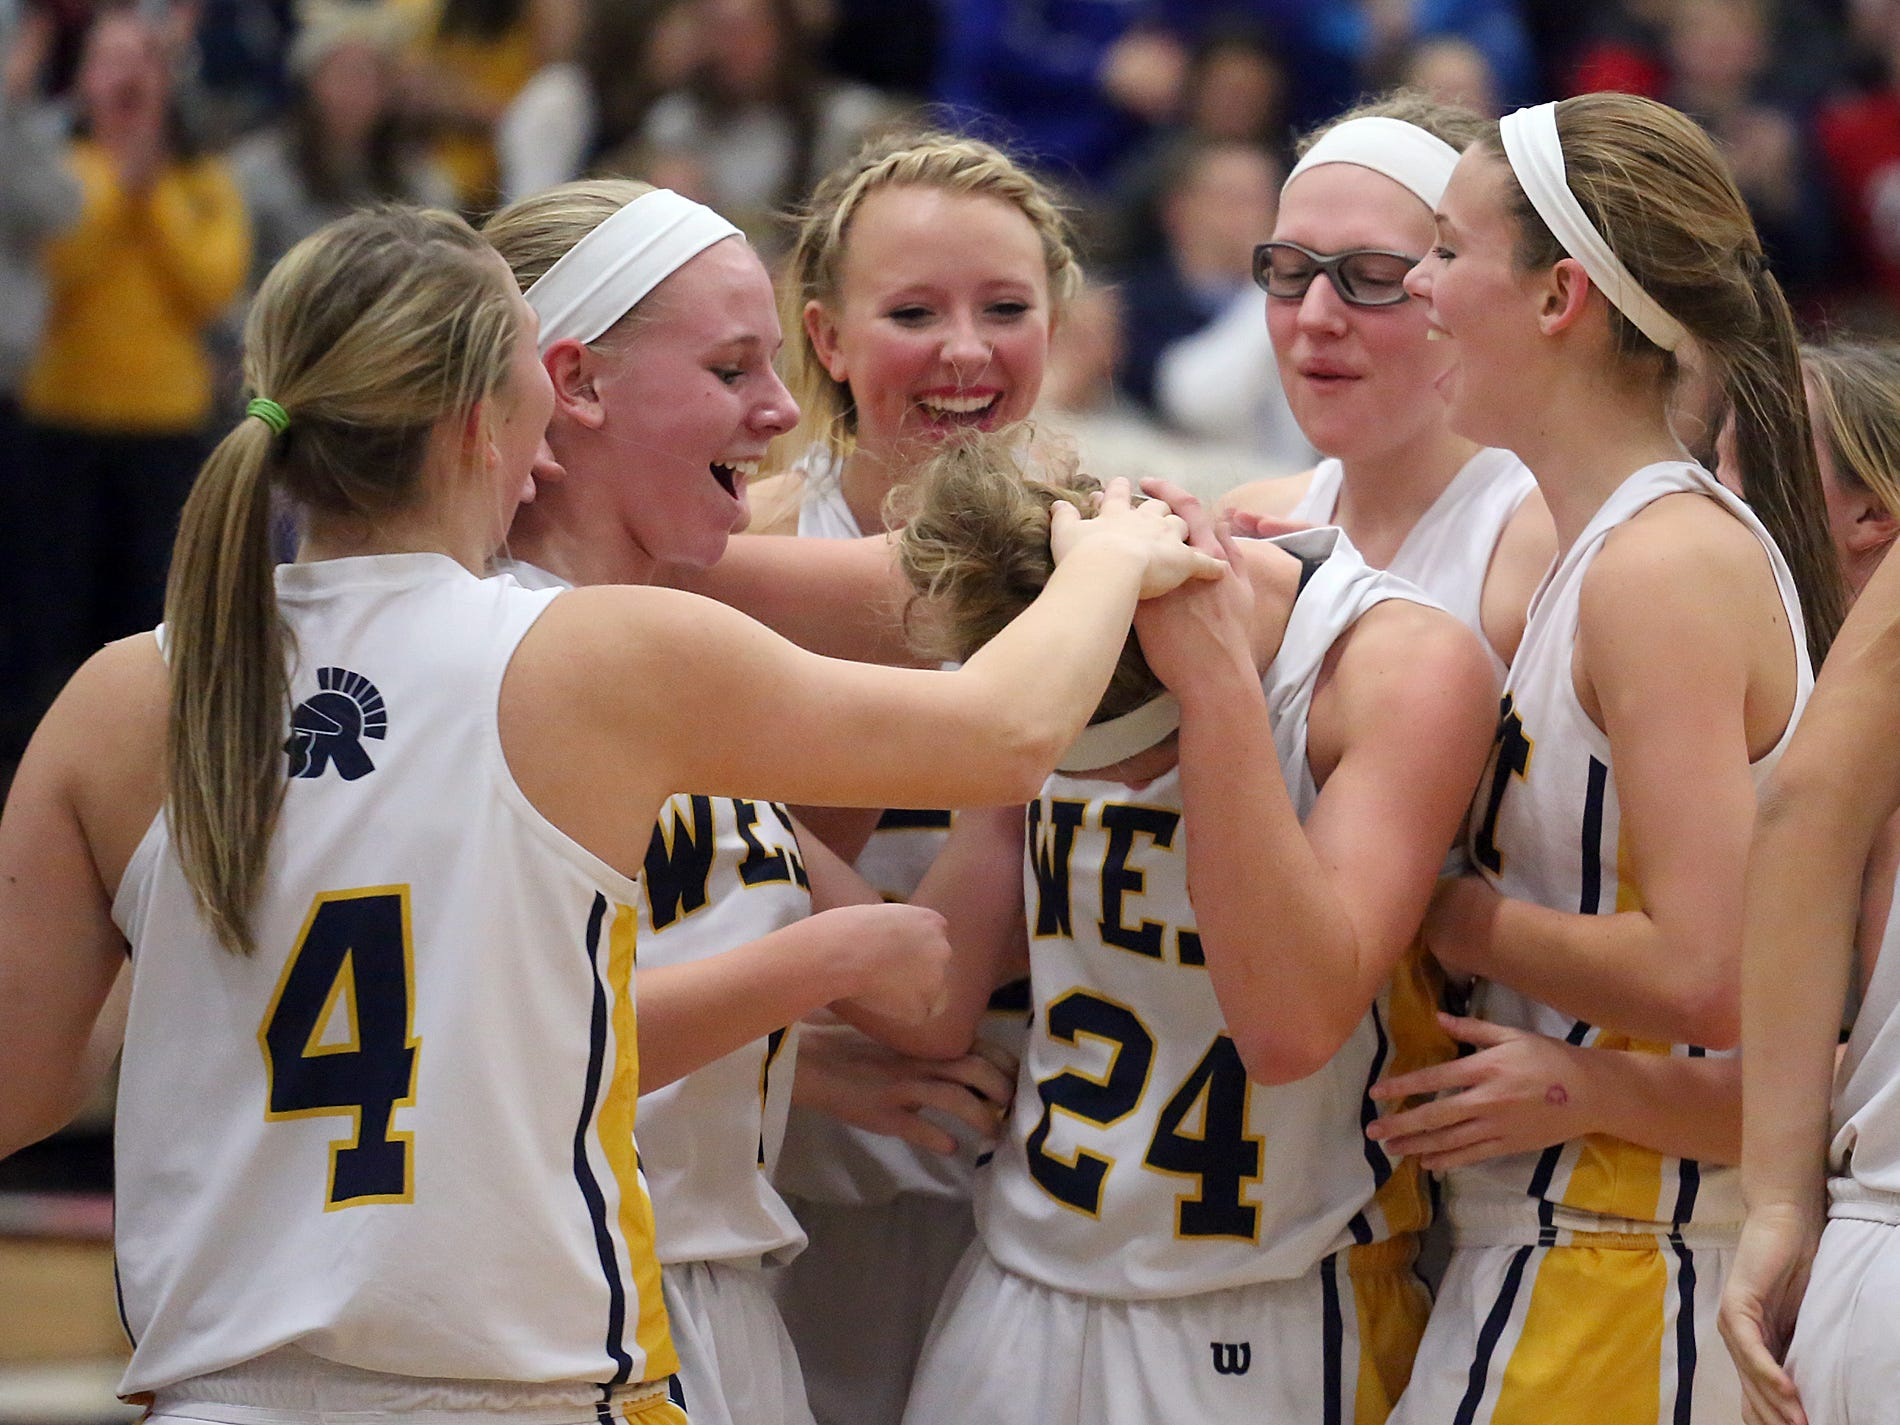 Wausau West's Jasmin Samz is congratulated after she scored her 1,000th career point as the Warriors lost to Pulaski on Friday.